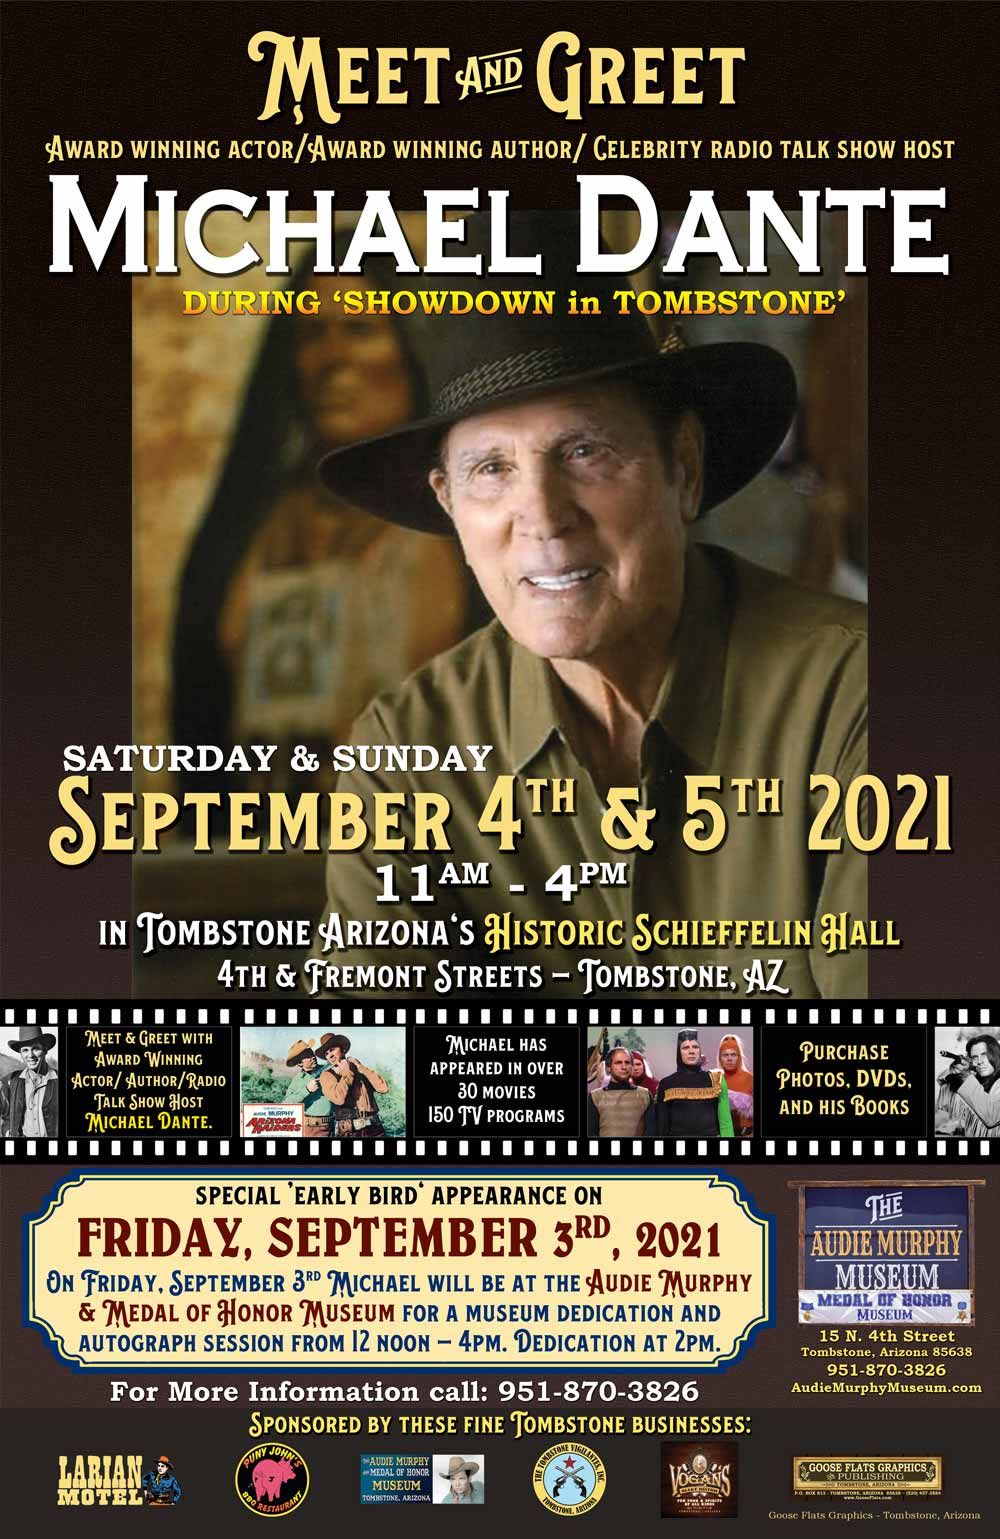 Award Winning Actor/Award Winning Author/Celebrity Radio Talk Show Host Michael Dante is the special celebrity guest in Tombstone, Arizona on Sept. 3, 4, 5, 2021